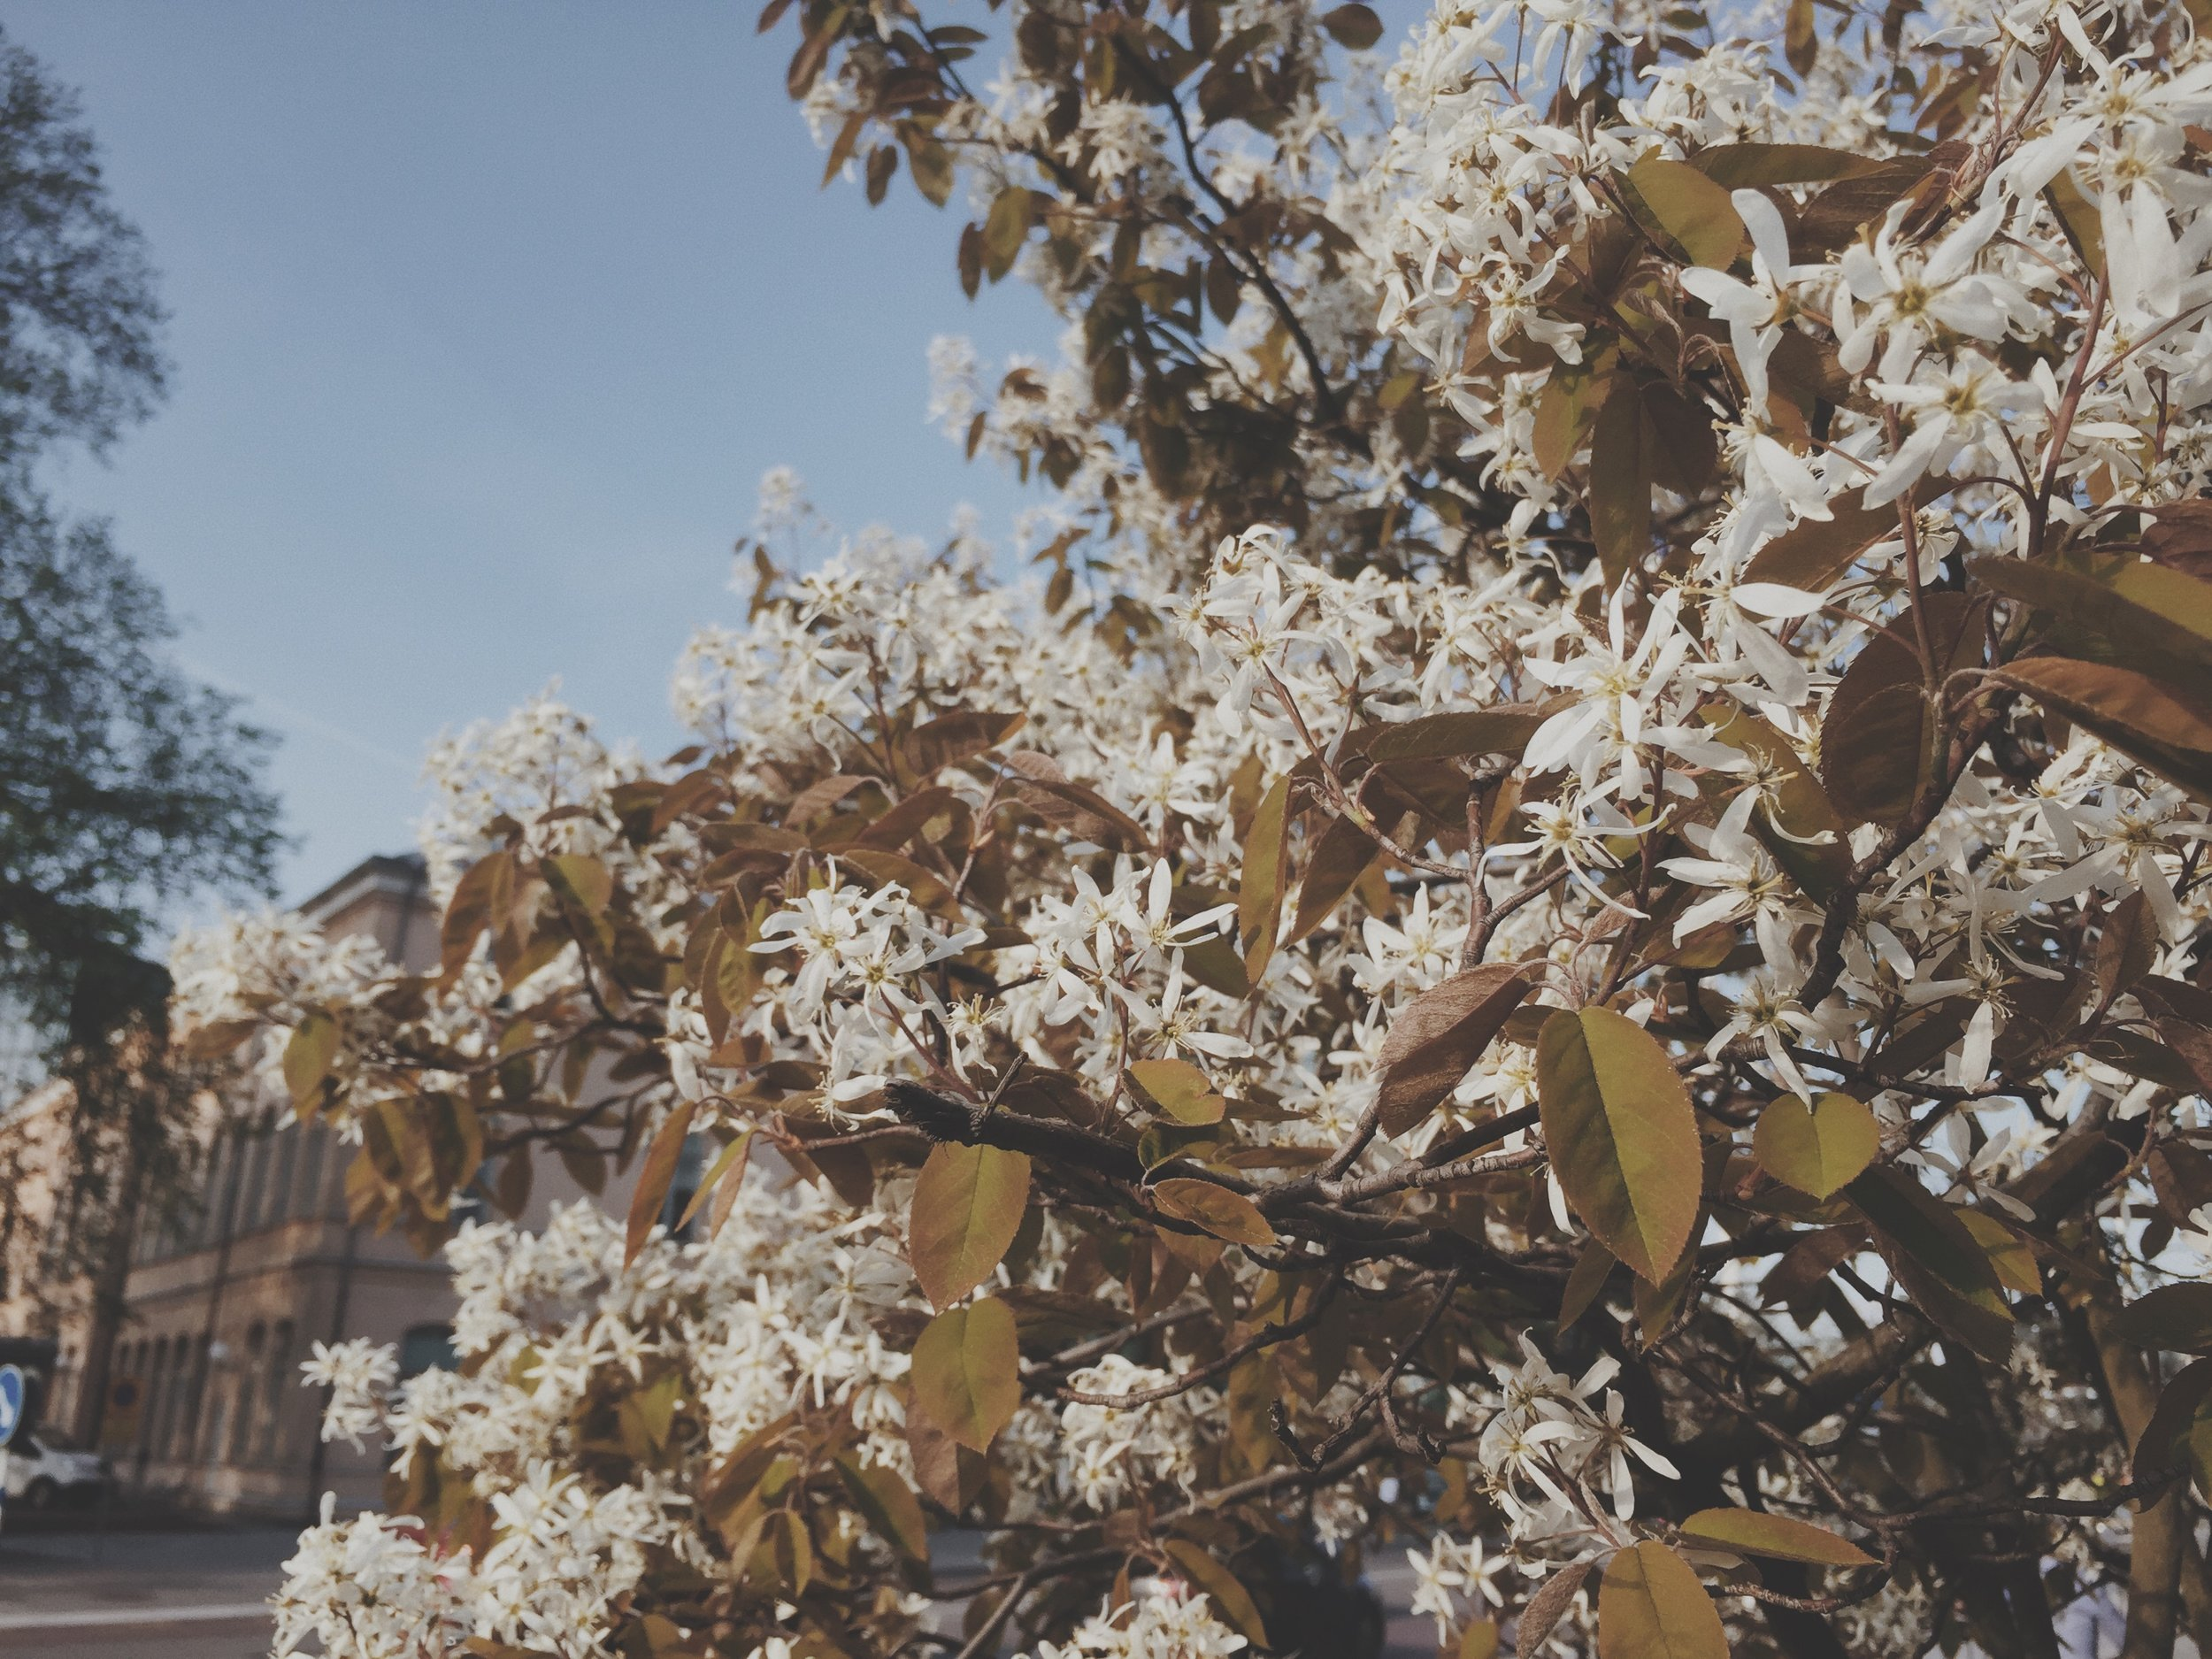 Photos from the Archive-  Celebrating the Imperfect. Spring blossoms captured with my iphone in Stockholm